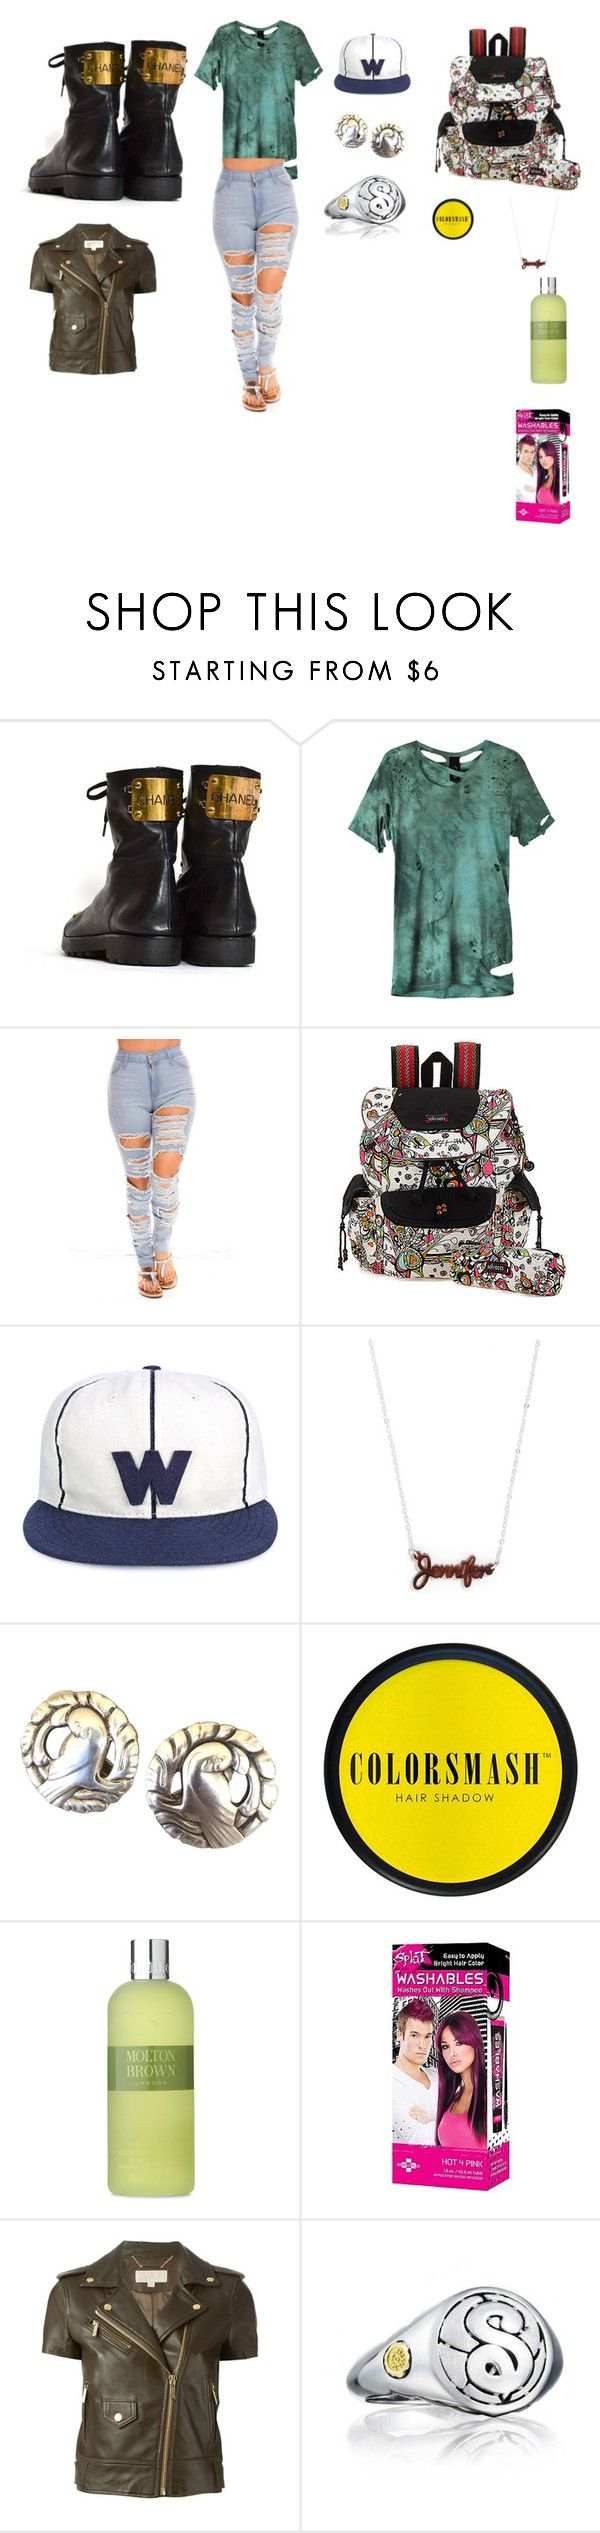 Para pasar el rato by gustavo-adolfo-coto on Polyvore featuring moda, Obesity and Speed, MICHAEL Michael Kors, Sakroots, Tacori, BaubleBar, Whistles, COLORSMASH and Molton Brown